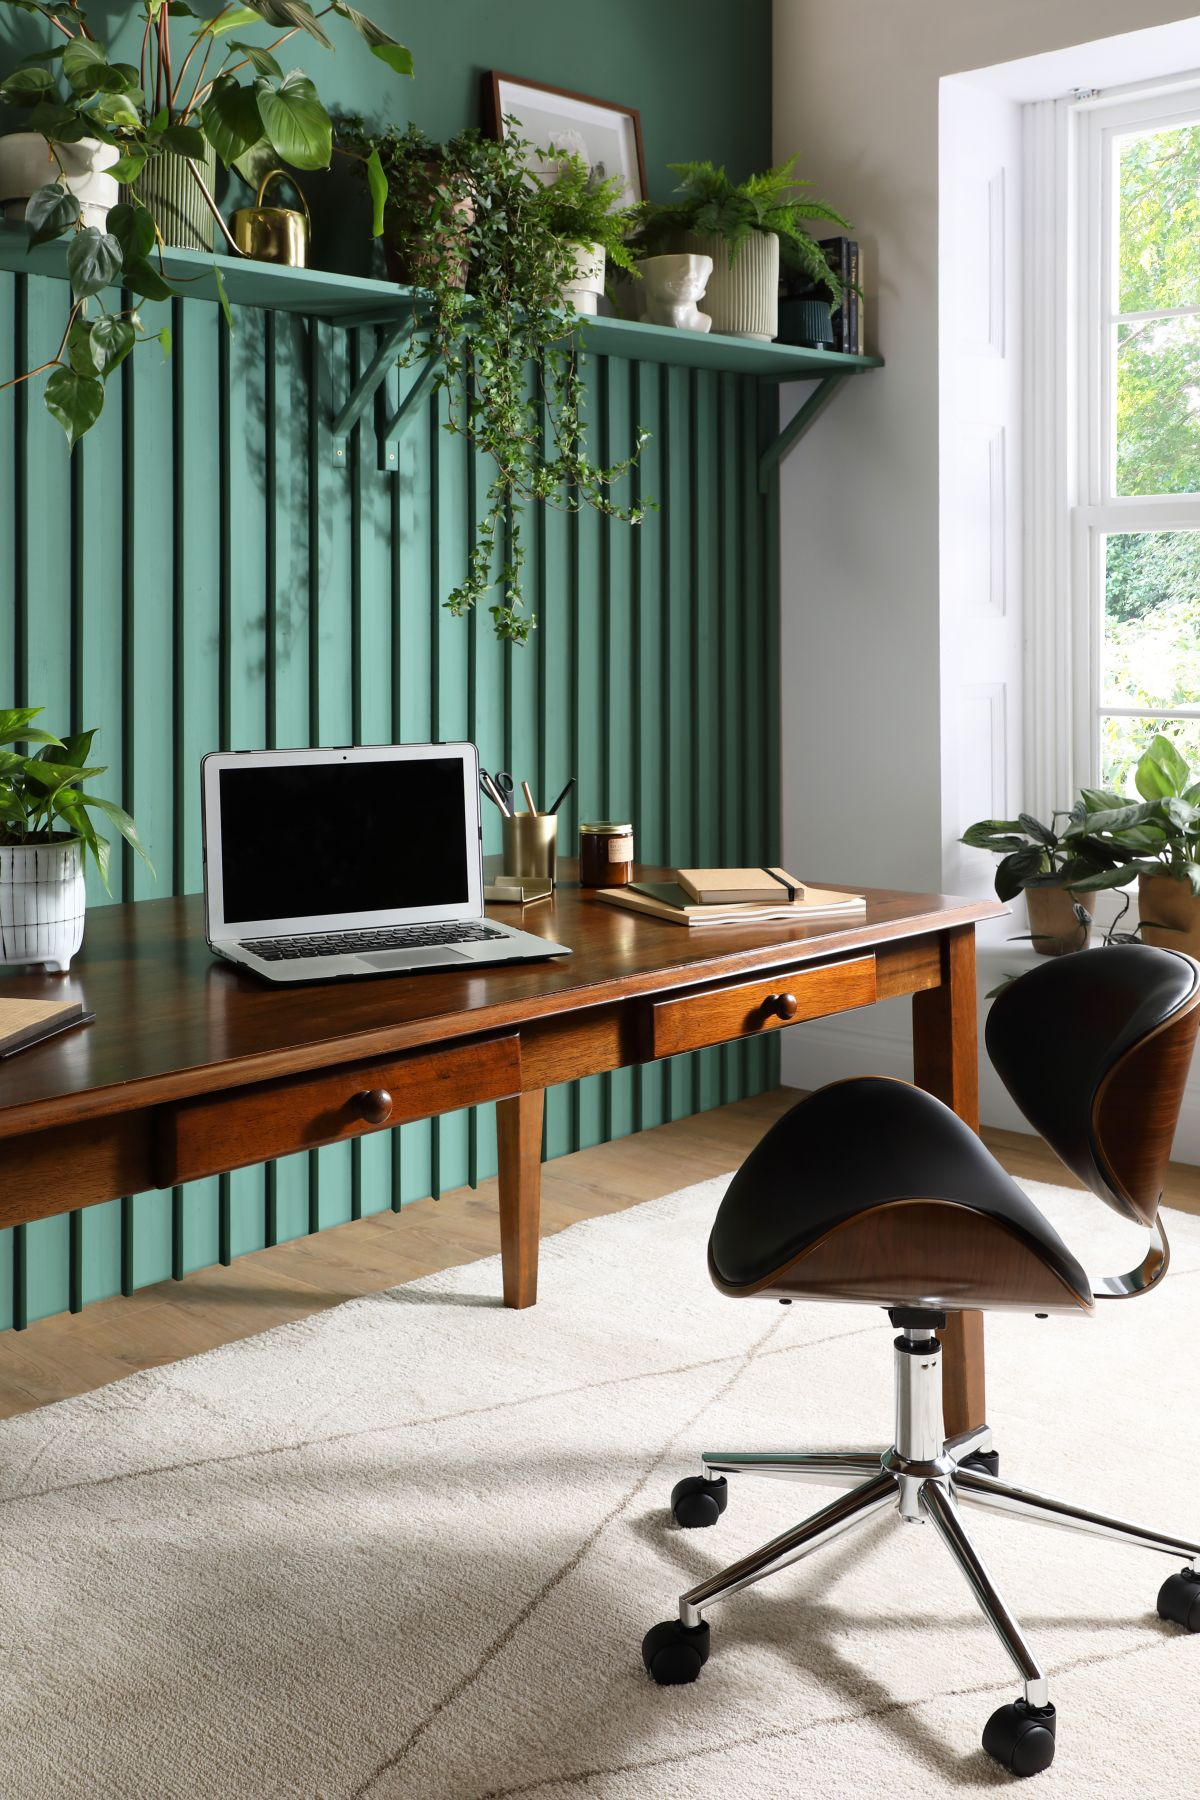 28 home office ideas – stylish spaces to inspire your WFH set up